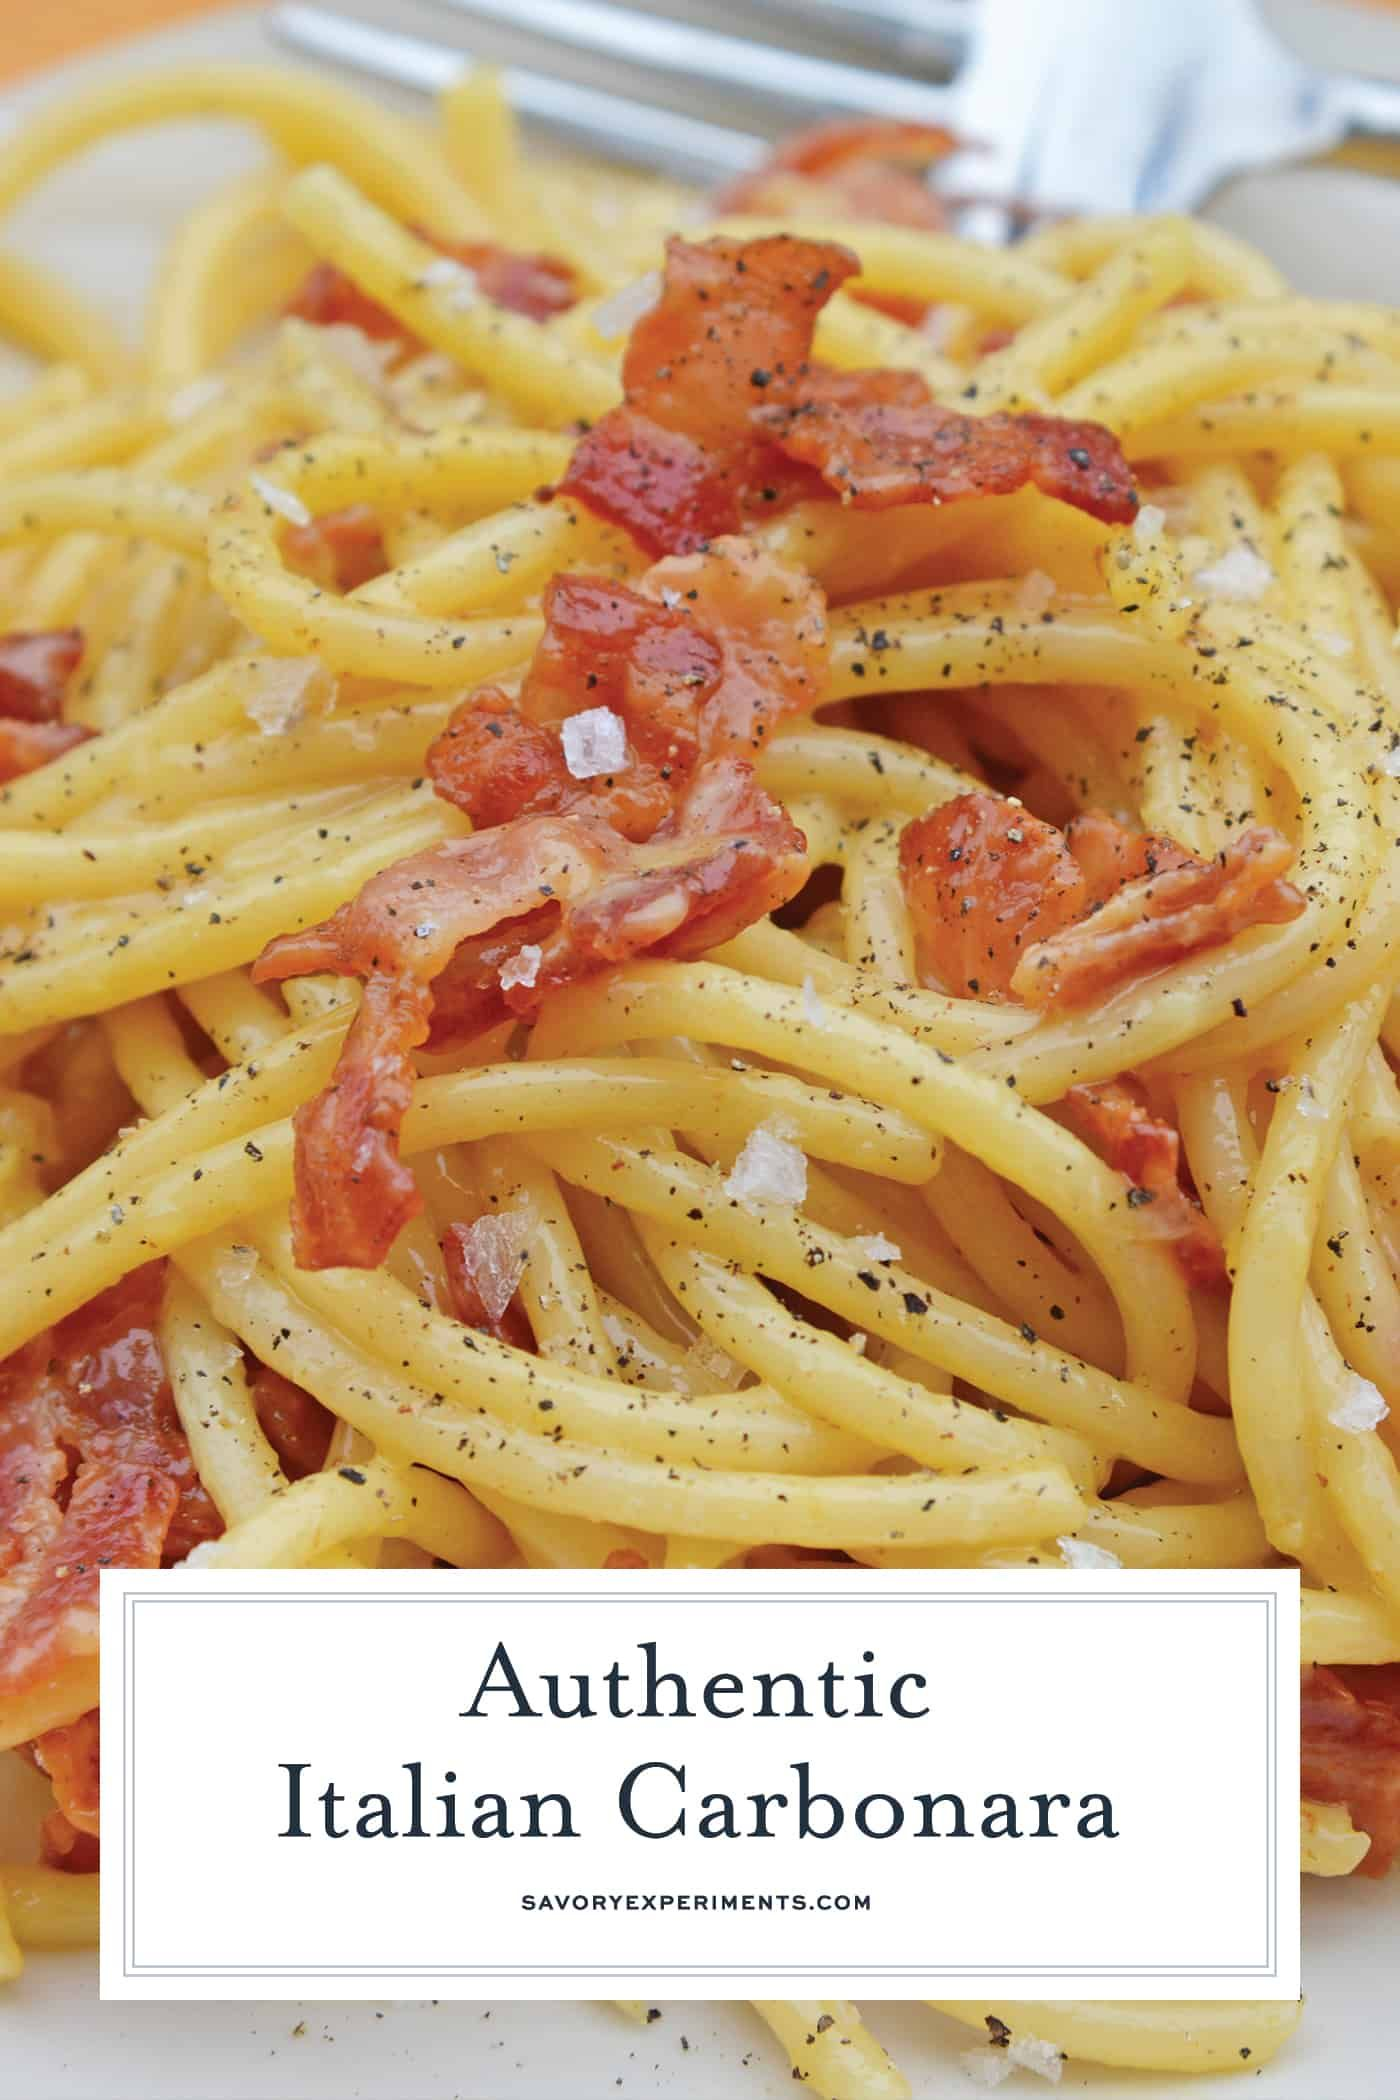 Authentic Carbonara Is An Easy Italian Pasta Recipe Using Eggs Cheese And Bacon This Is Italian Pasta Recipes Easy Italian Recipes Pasta Italian Recipes Easy